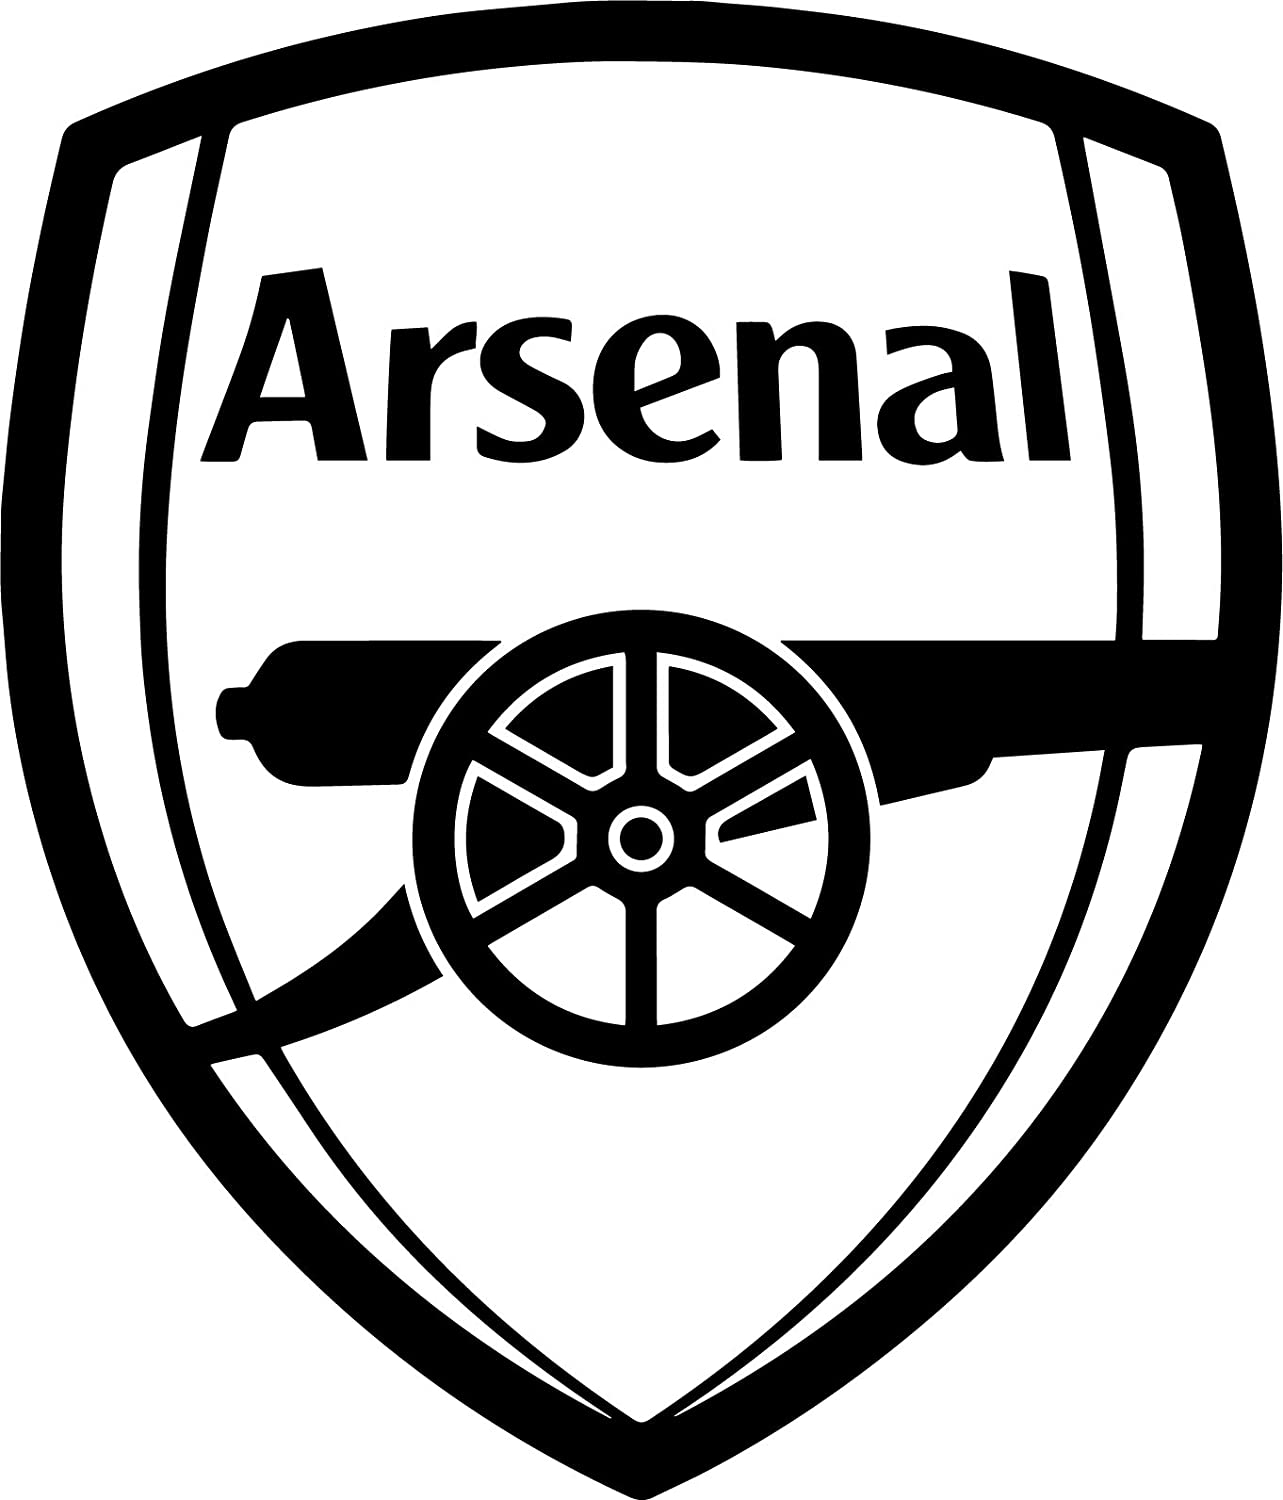 (9.7cm x 11cm , Black) - FC Arsenal (BLACK) (set of 2) - silhouette stencil artwork by ANGDEST - Waterproof Vinyl Decal Stickers for Laptop Phone Helmet Car Window Bumper Mug Cup Door Wall Home Decoration B076V7PRTG 5